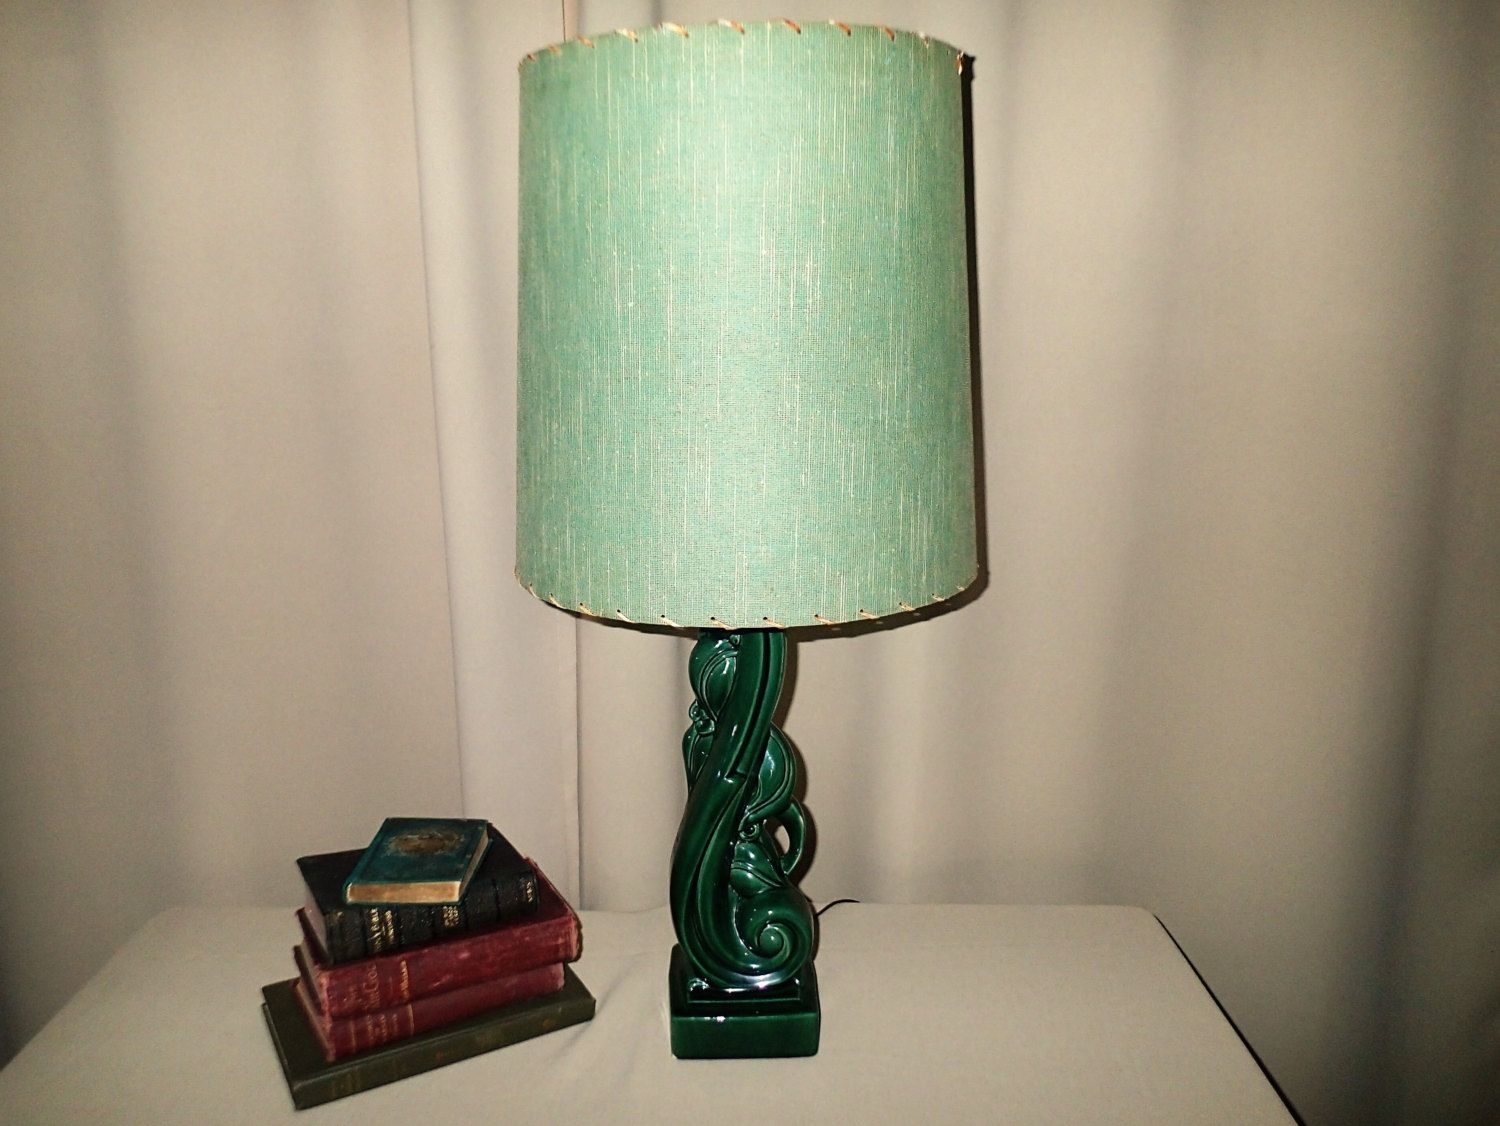 Vintage Ceramic Table Lamp Organic Floral Botanical Table Lamp With Vintage Laced Fiberglass Shade 1940s 1950s By Myret Ceramic Table Lamps Vintage Lamps Lamp